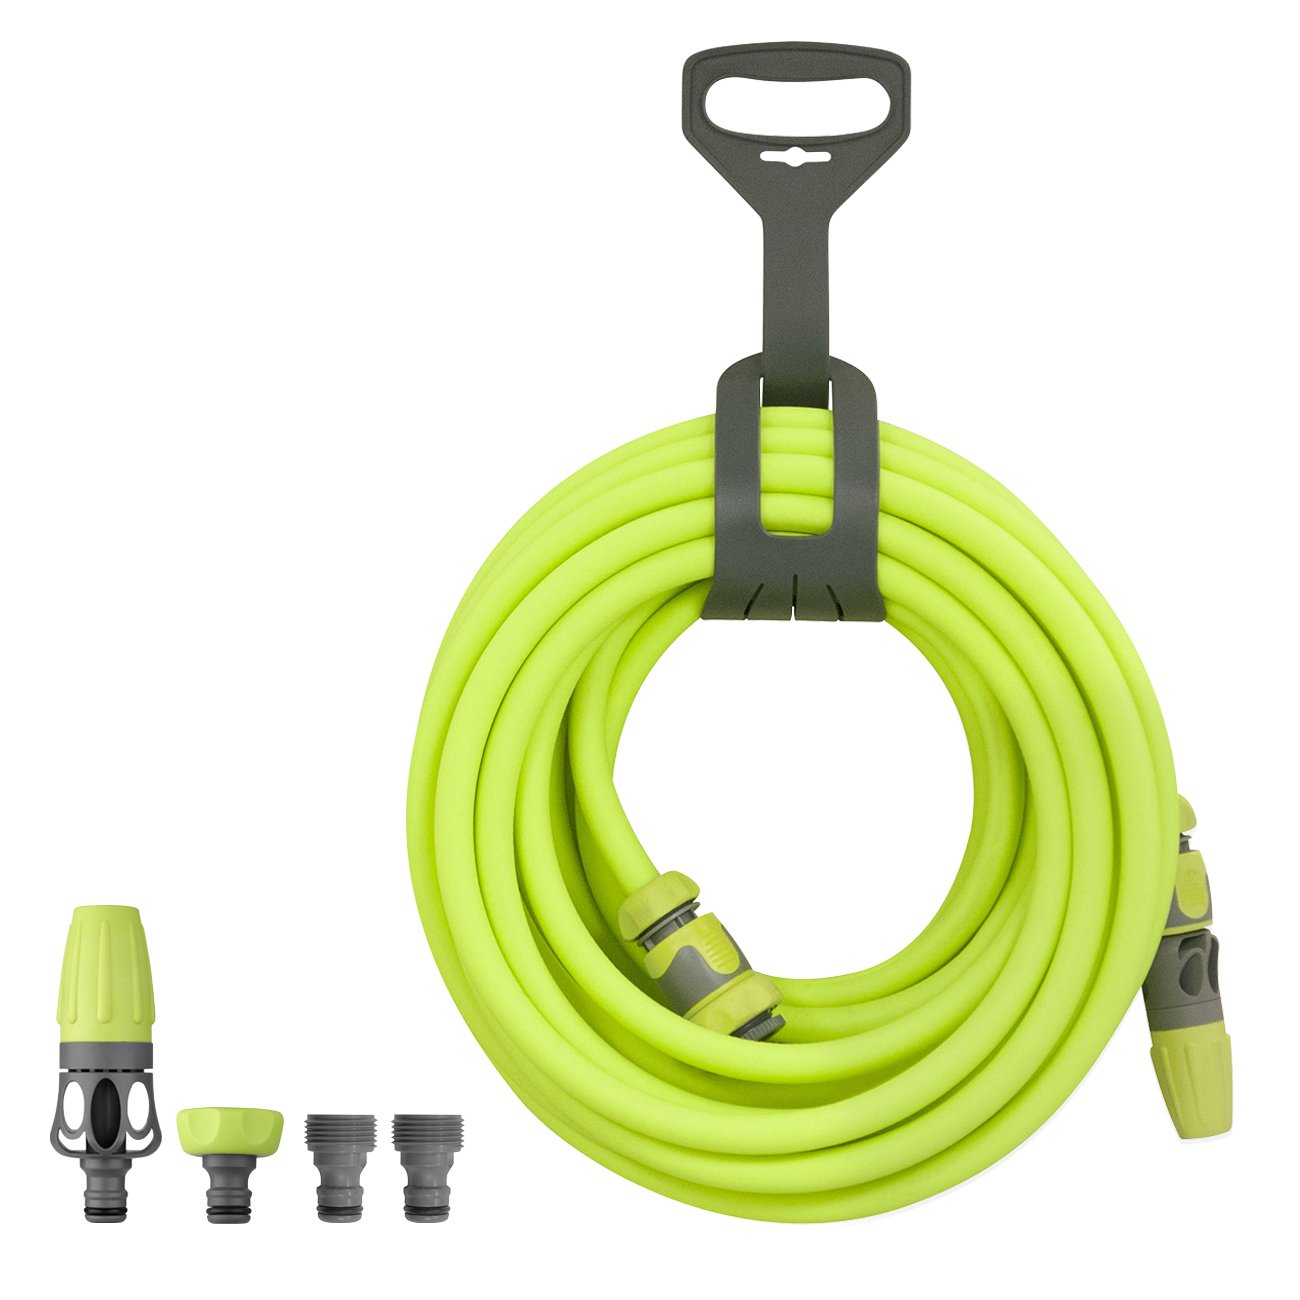 Flexzilla Garden Hose Kit with Quick Connect Attachments, 1/2 in. x 50 ft., Heavy Duty, Lightweight, Drinking Water Safe - HFZG12050QN, Green